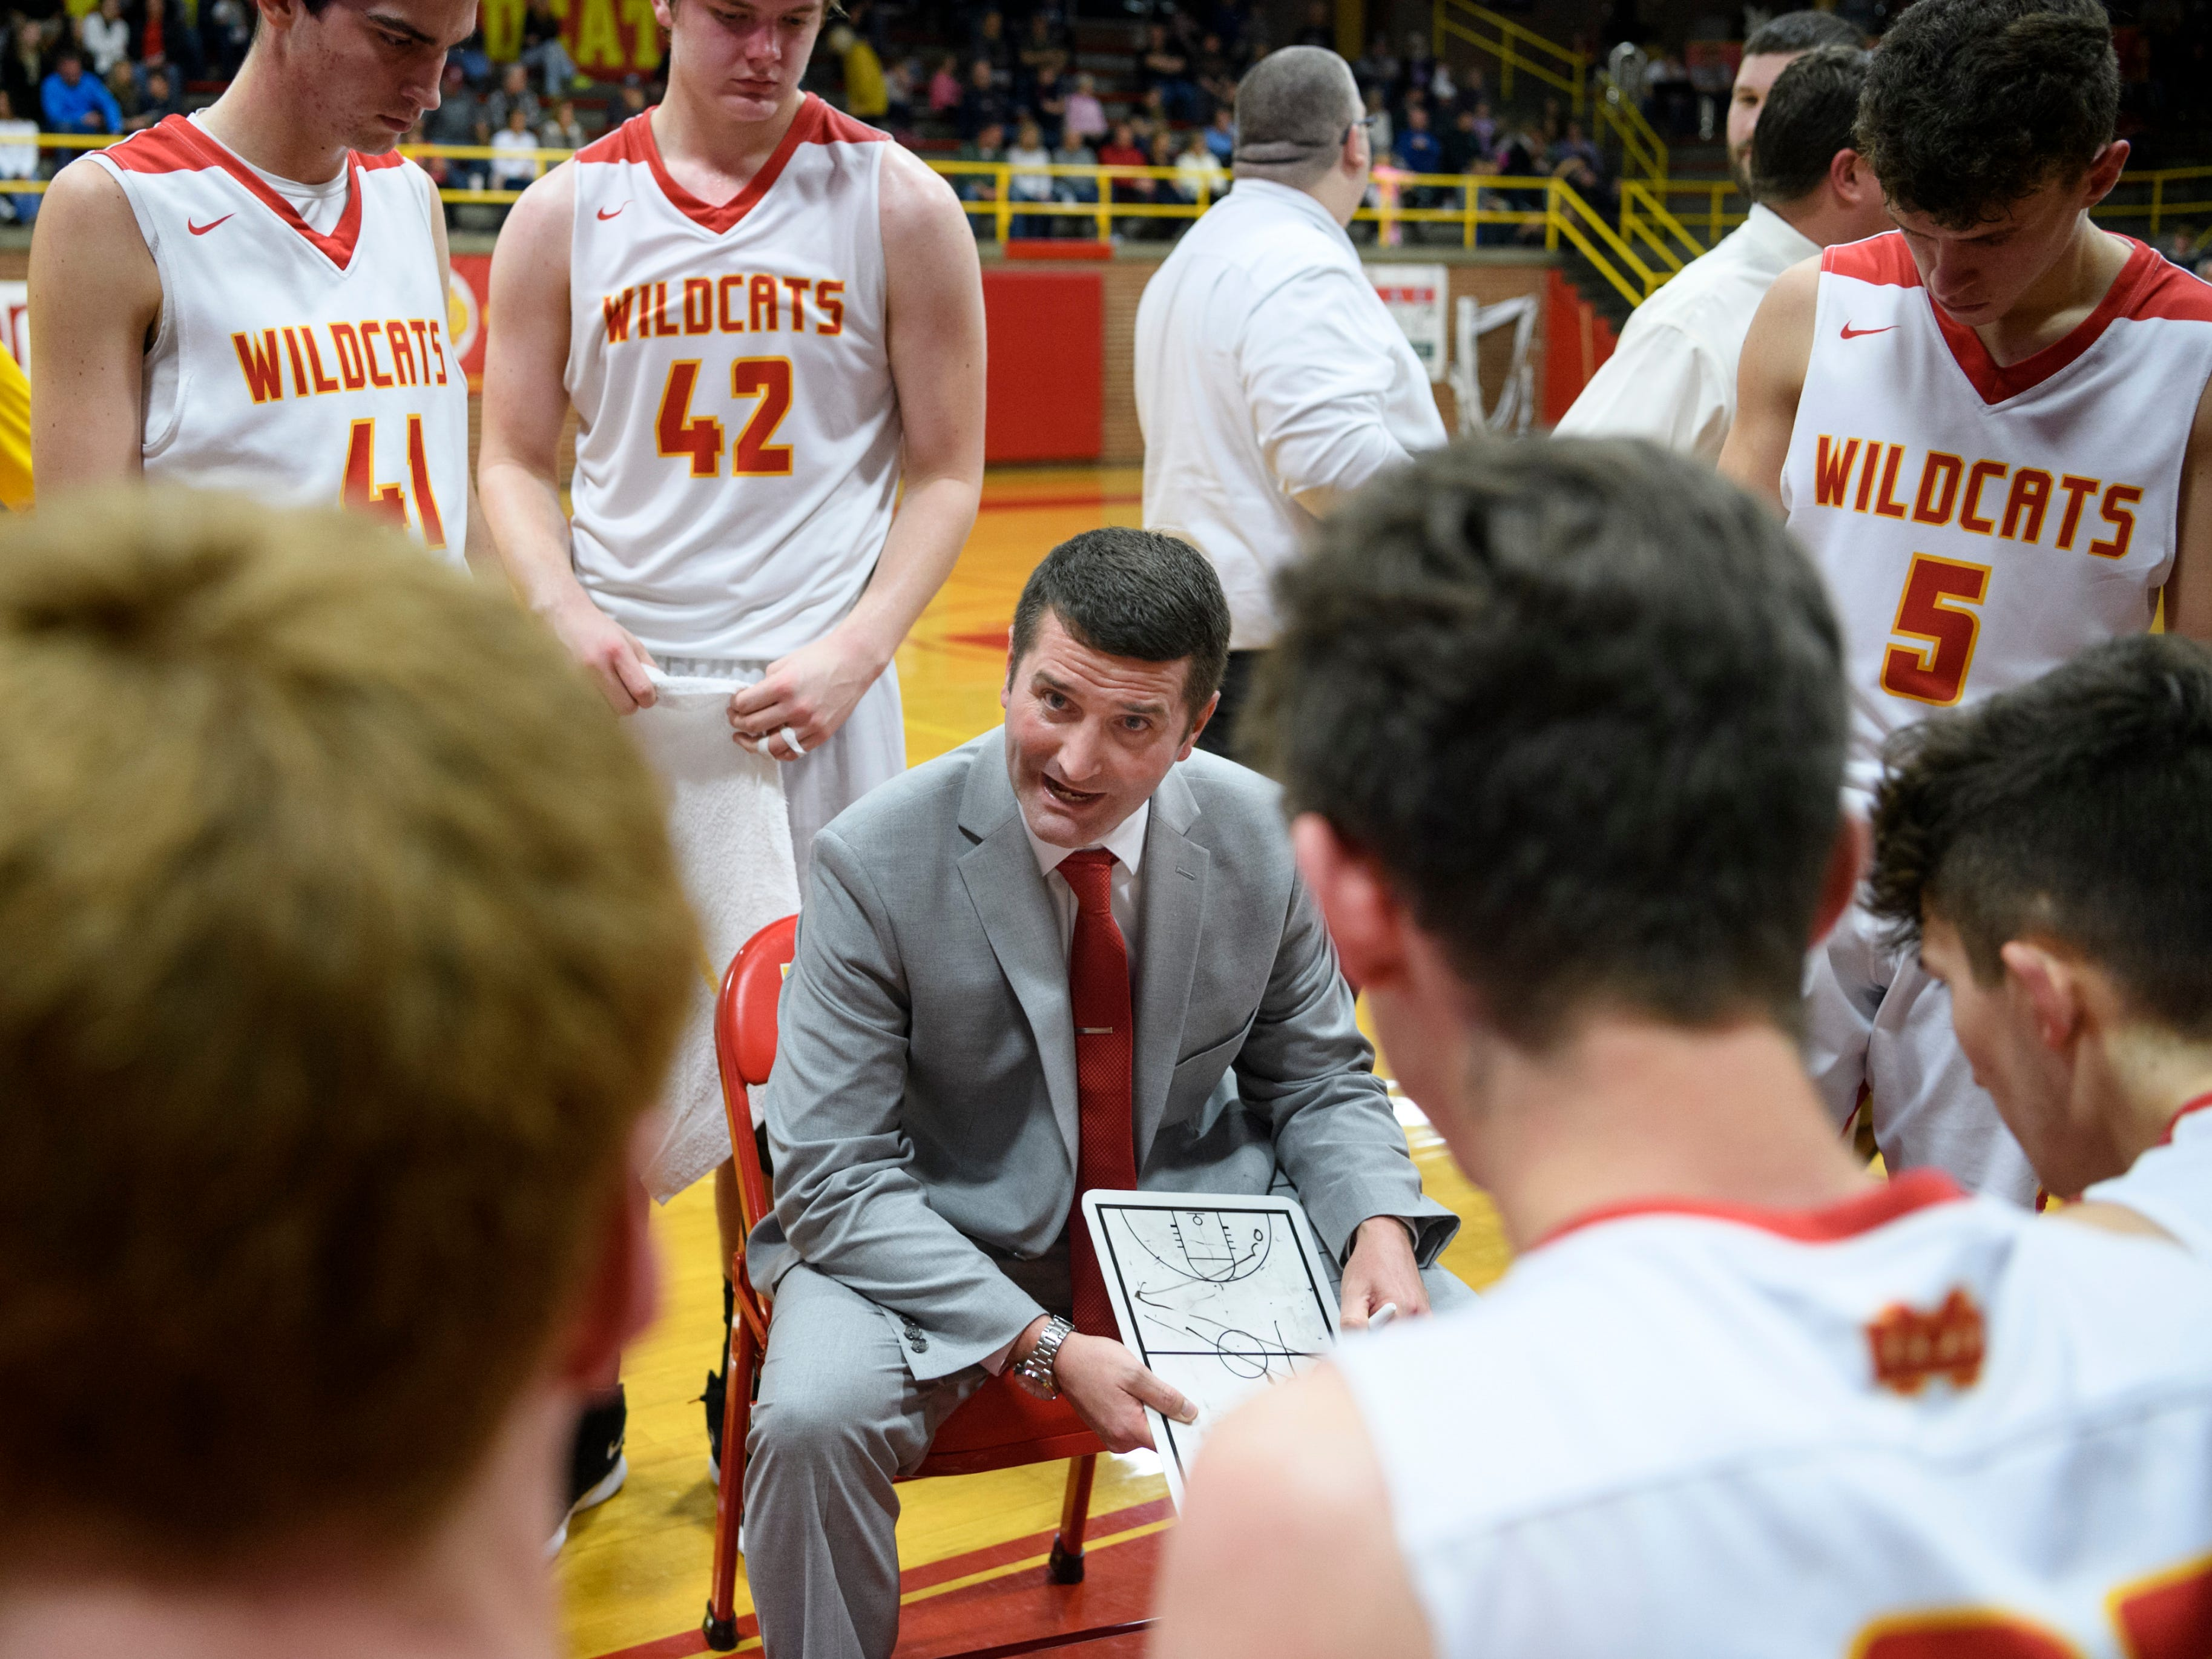 Mater Dei Head Coach Kurt Wildeman talks to his team during a second quarter time-out against the Boonville Pioneers at Mater Dei High School in Evansville, Ind., Saturday, Jan. 5, 2019. The Wildcats defeated the Pioneers, 93-65.